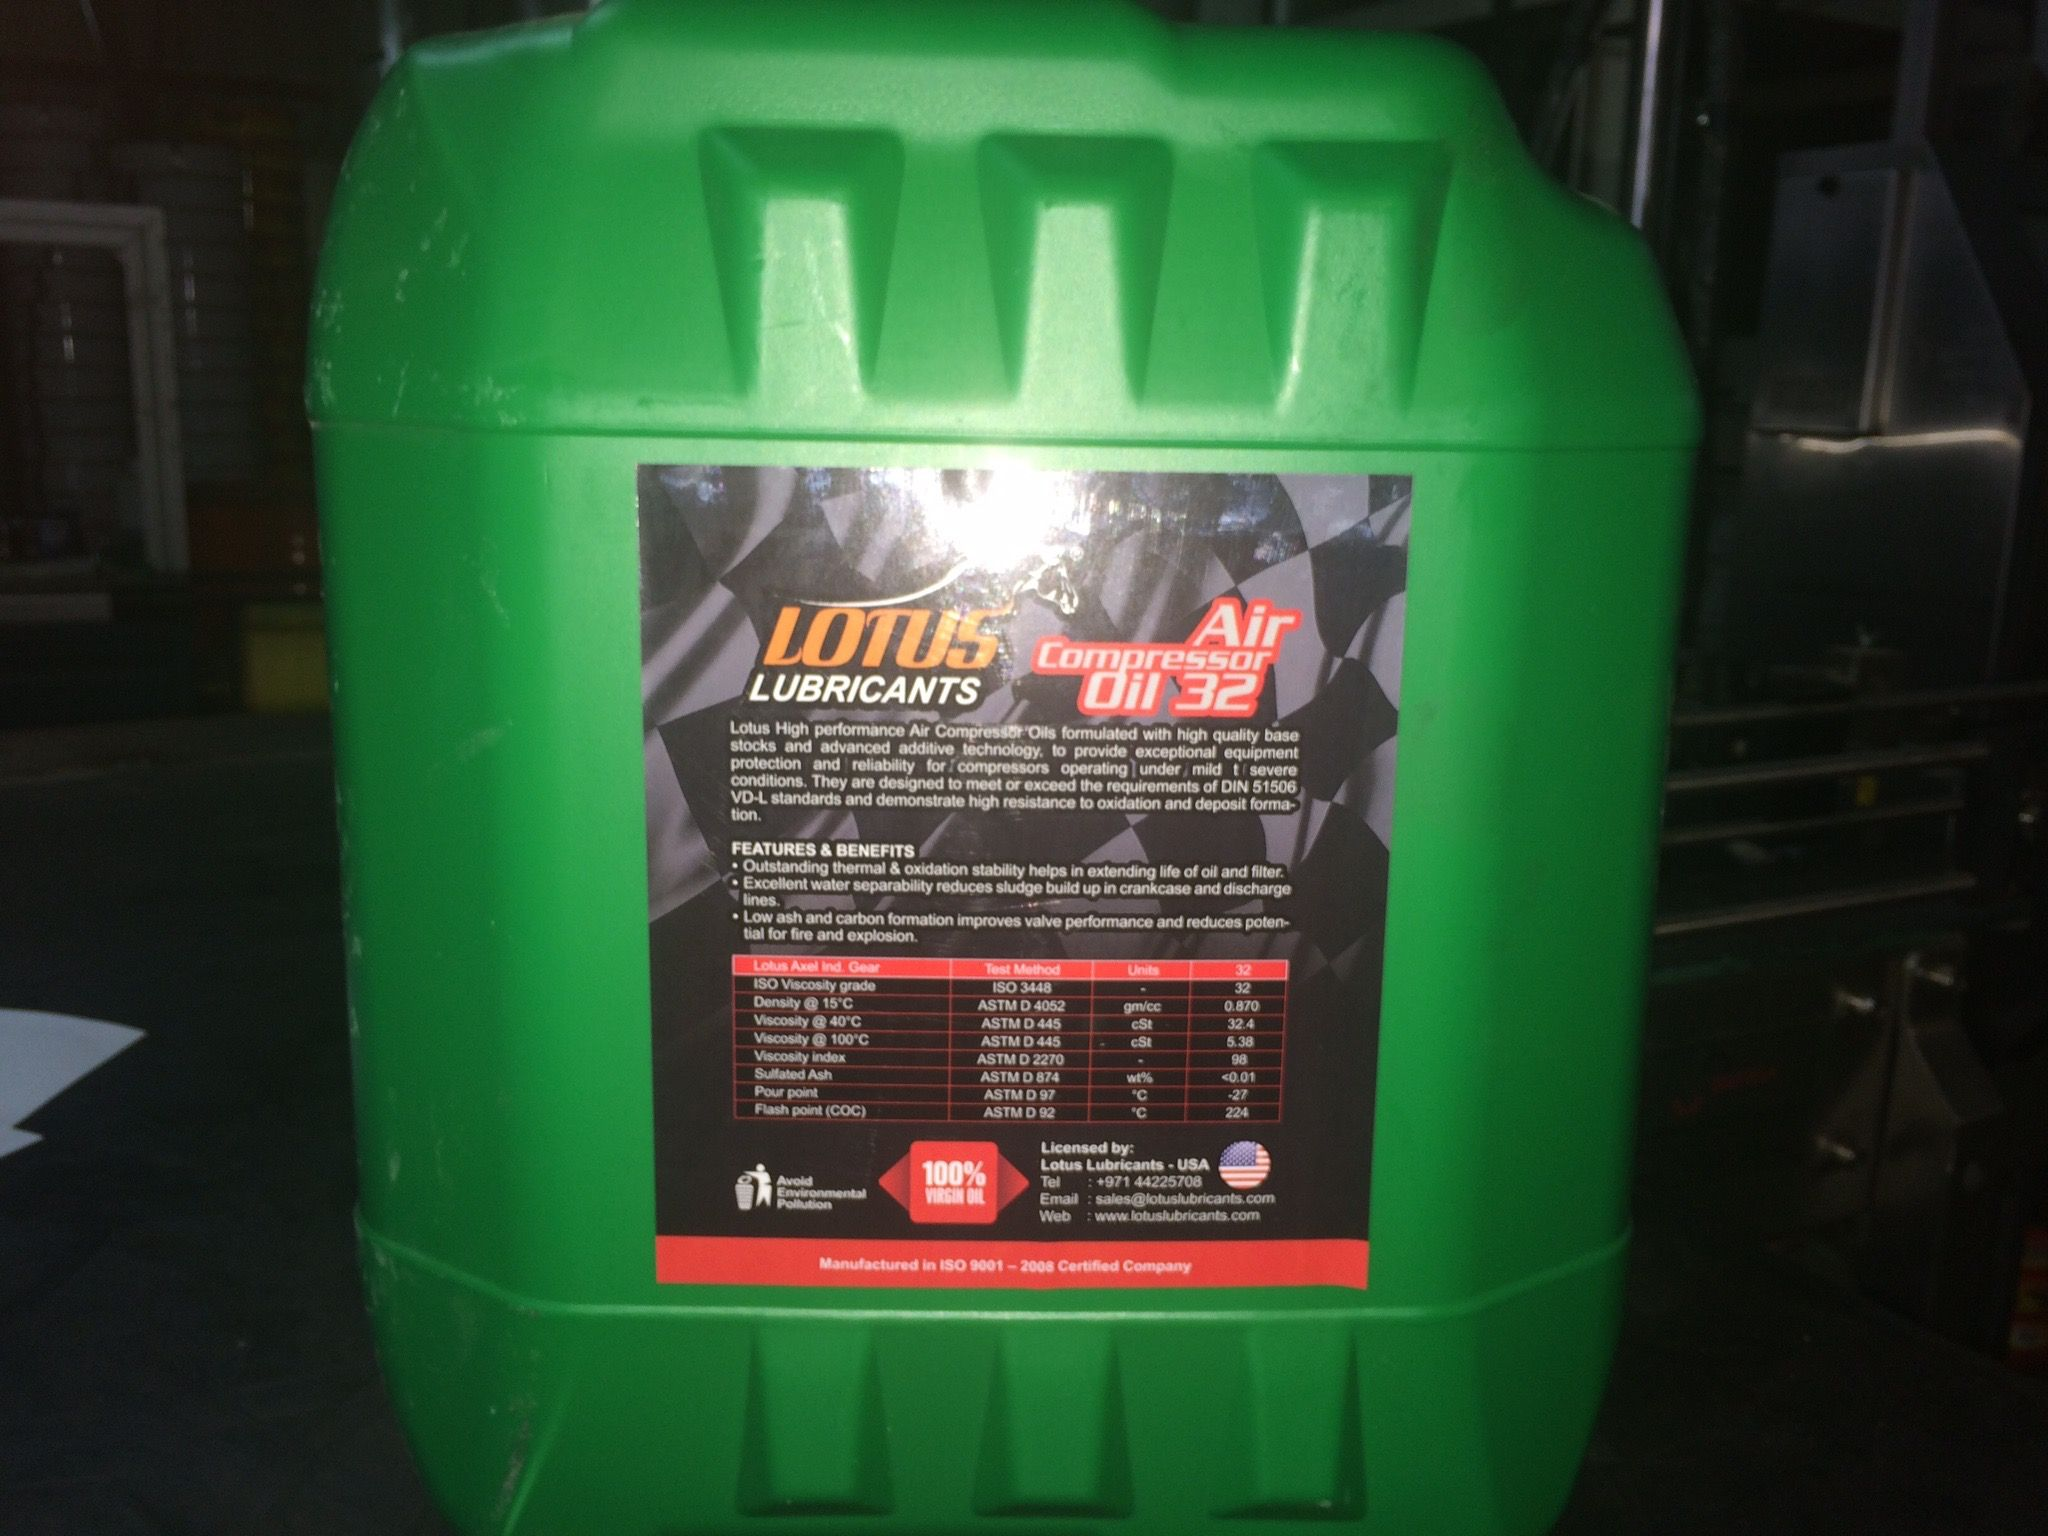 Africa Engine oil suppliers in Dubai, Automotive lubricant engine